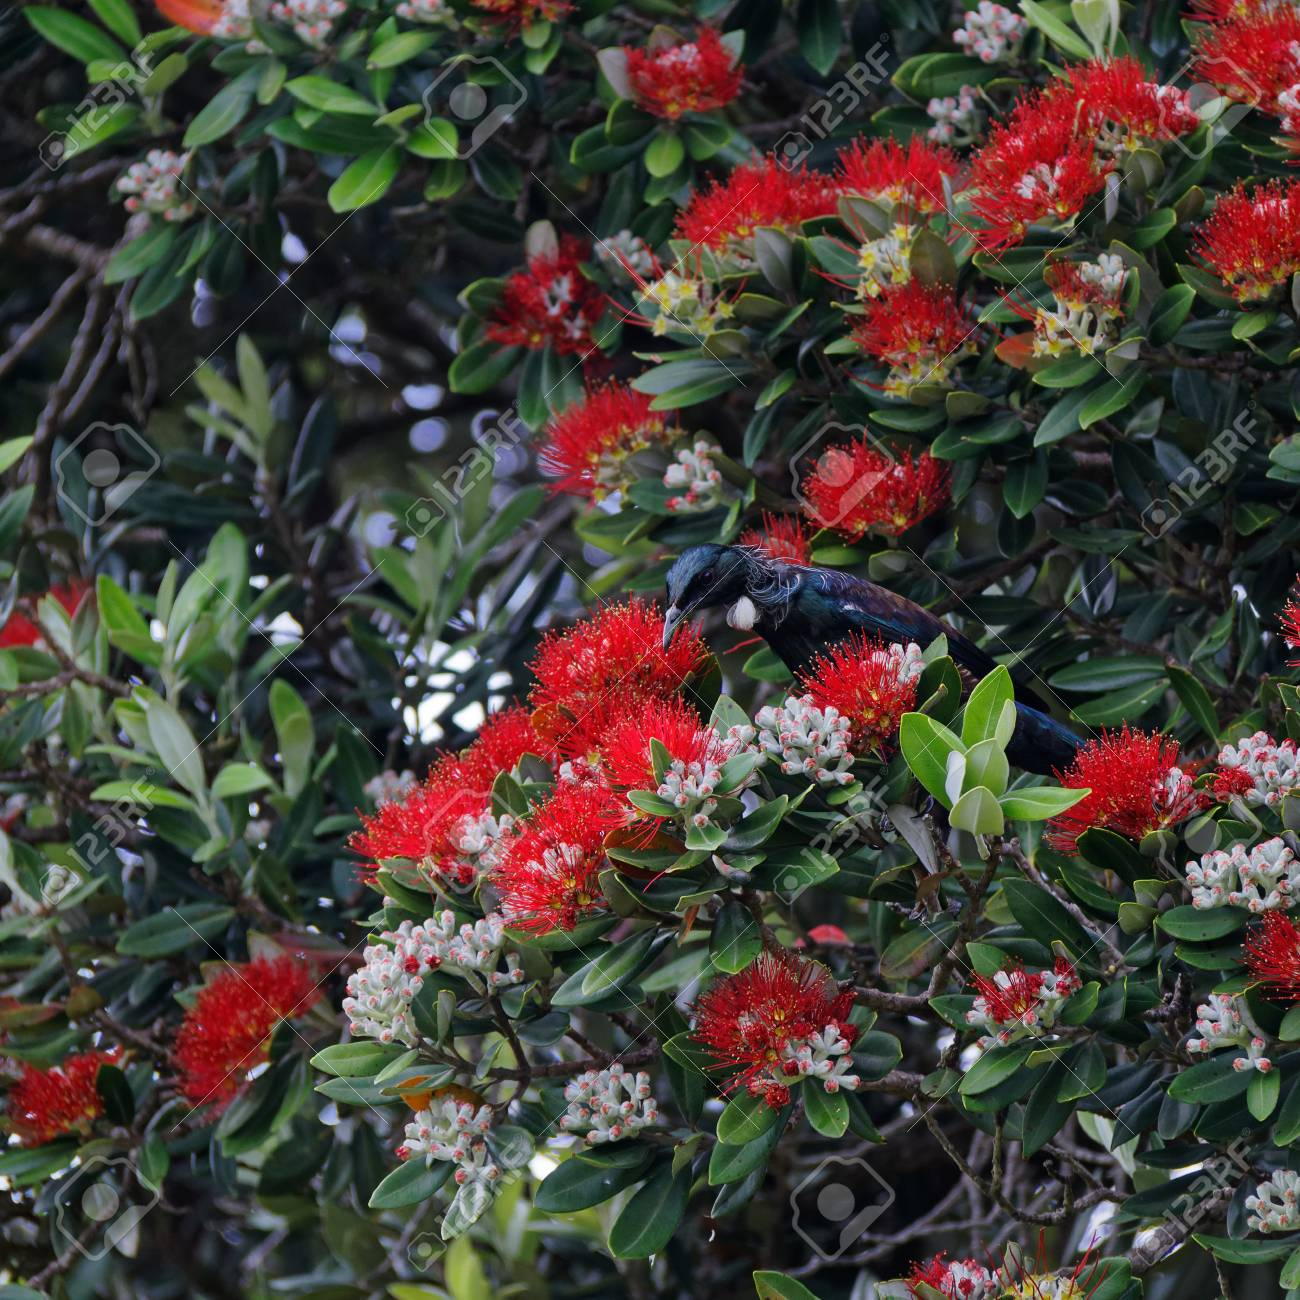 New Zealand Christmas Tree.Tui Drinking Nectar From A Pohutukawa Tree The New Zealand Christmas